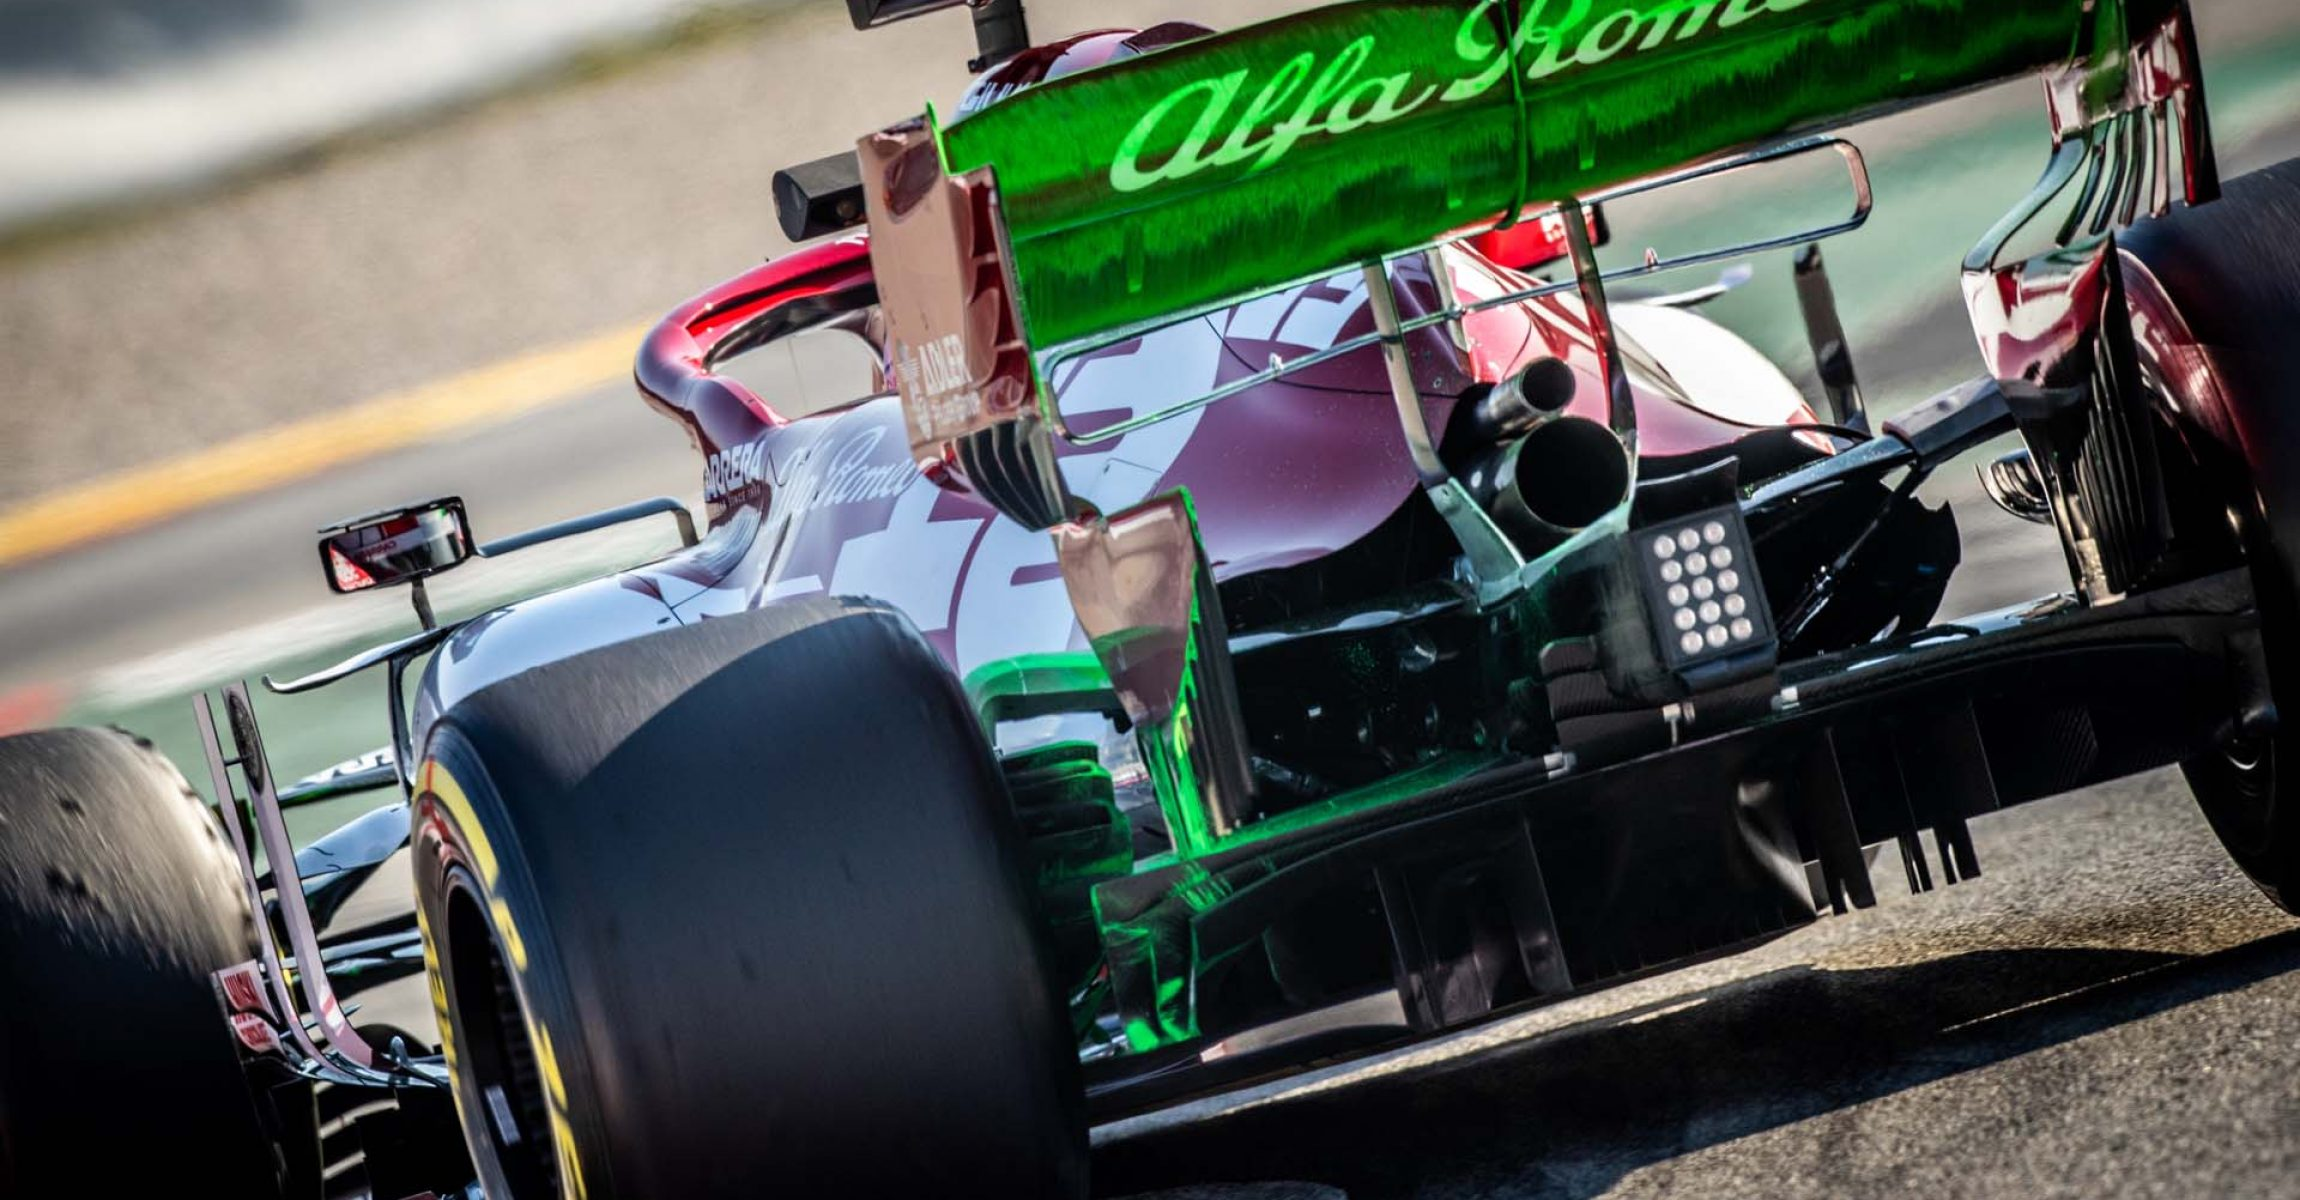 99 GIOVINAZZI Antonio (ita), Alfa Romeo Racing C39, action  during the first session of the Formula 1 Pre-season testing 2020 from February 19 to 21, 2020 on the Circuit de Barcelona-Catalunya, in Montmelo, Barcelona, Spain - Photo Frederic Le Floc'h / DPPI flo-viz aero paint